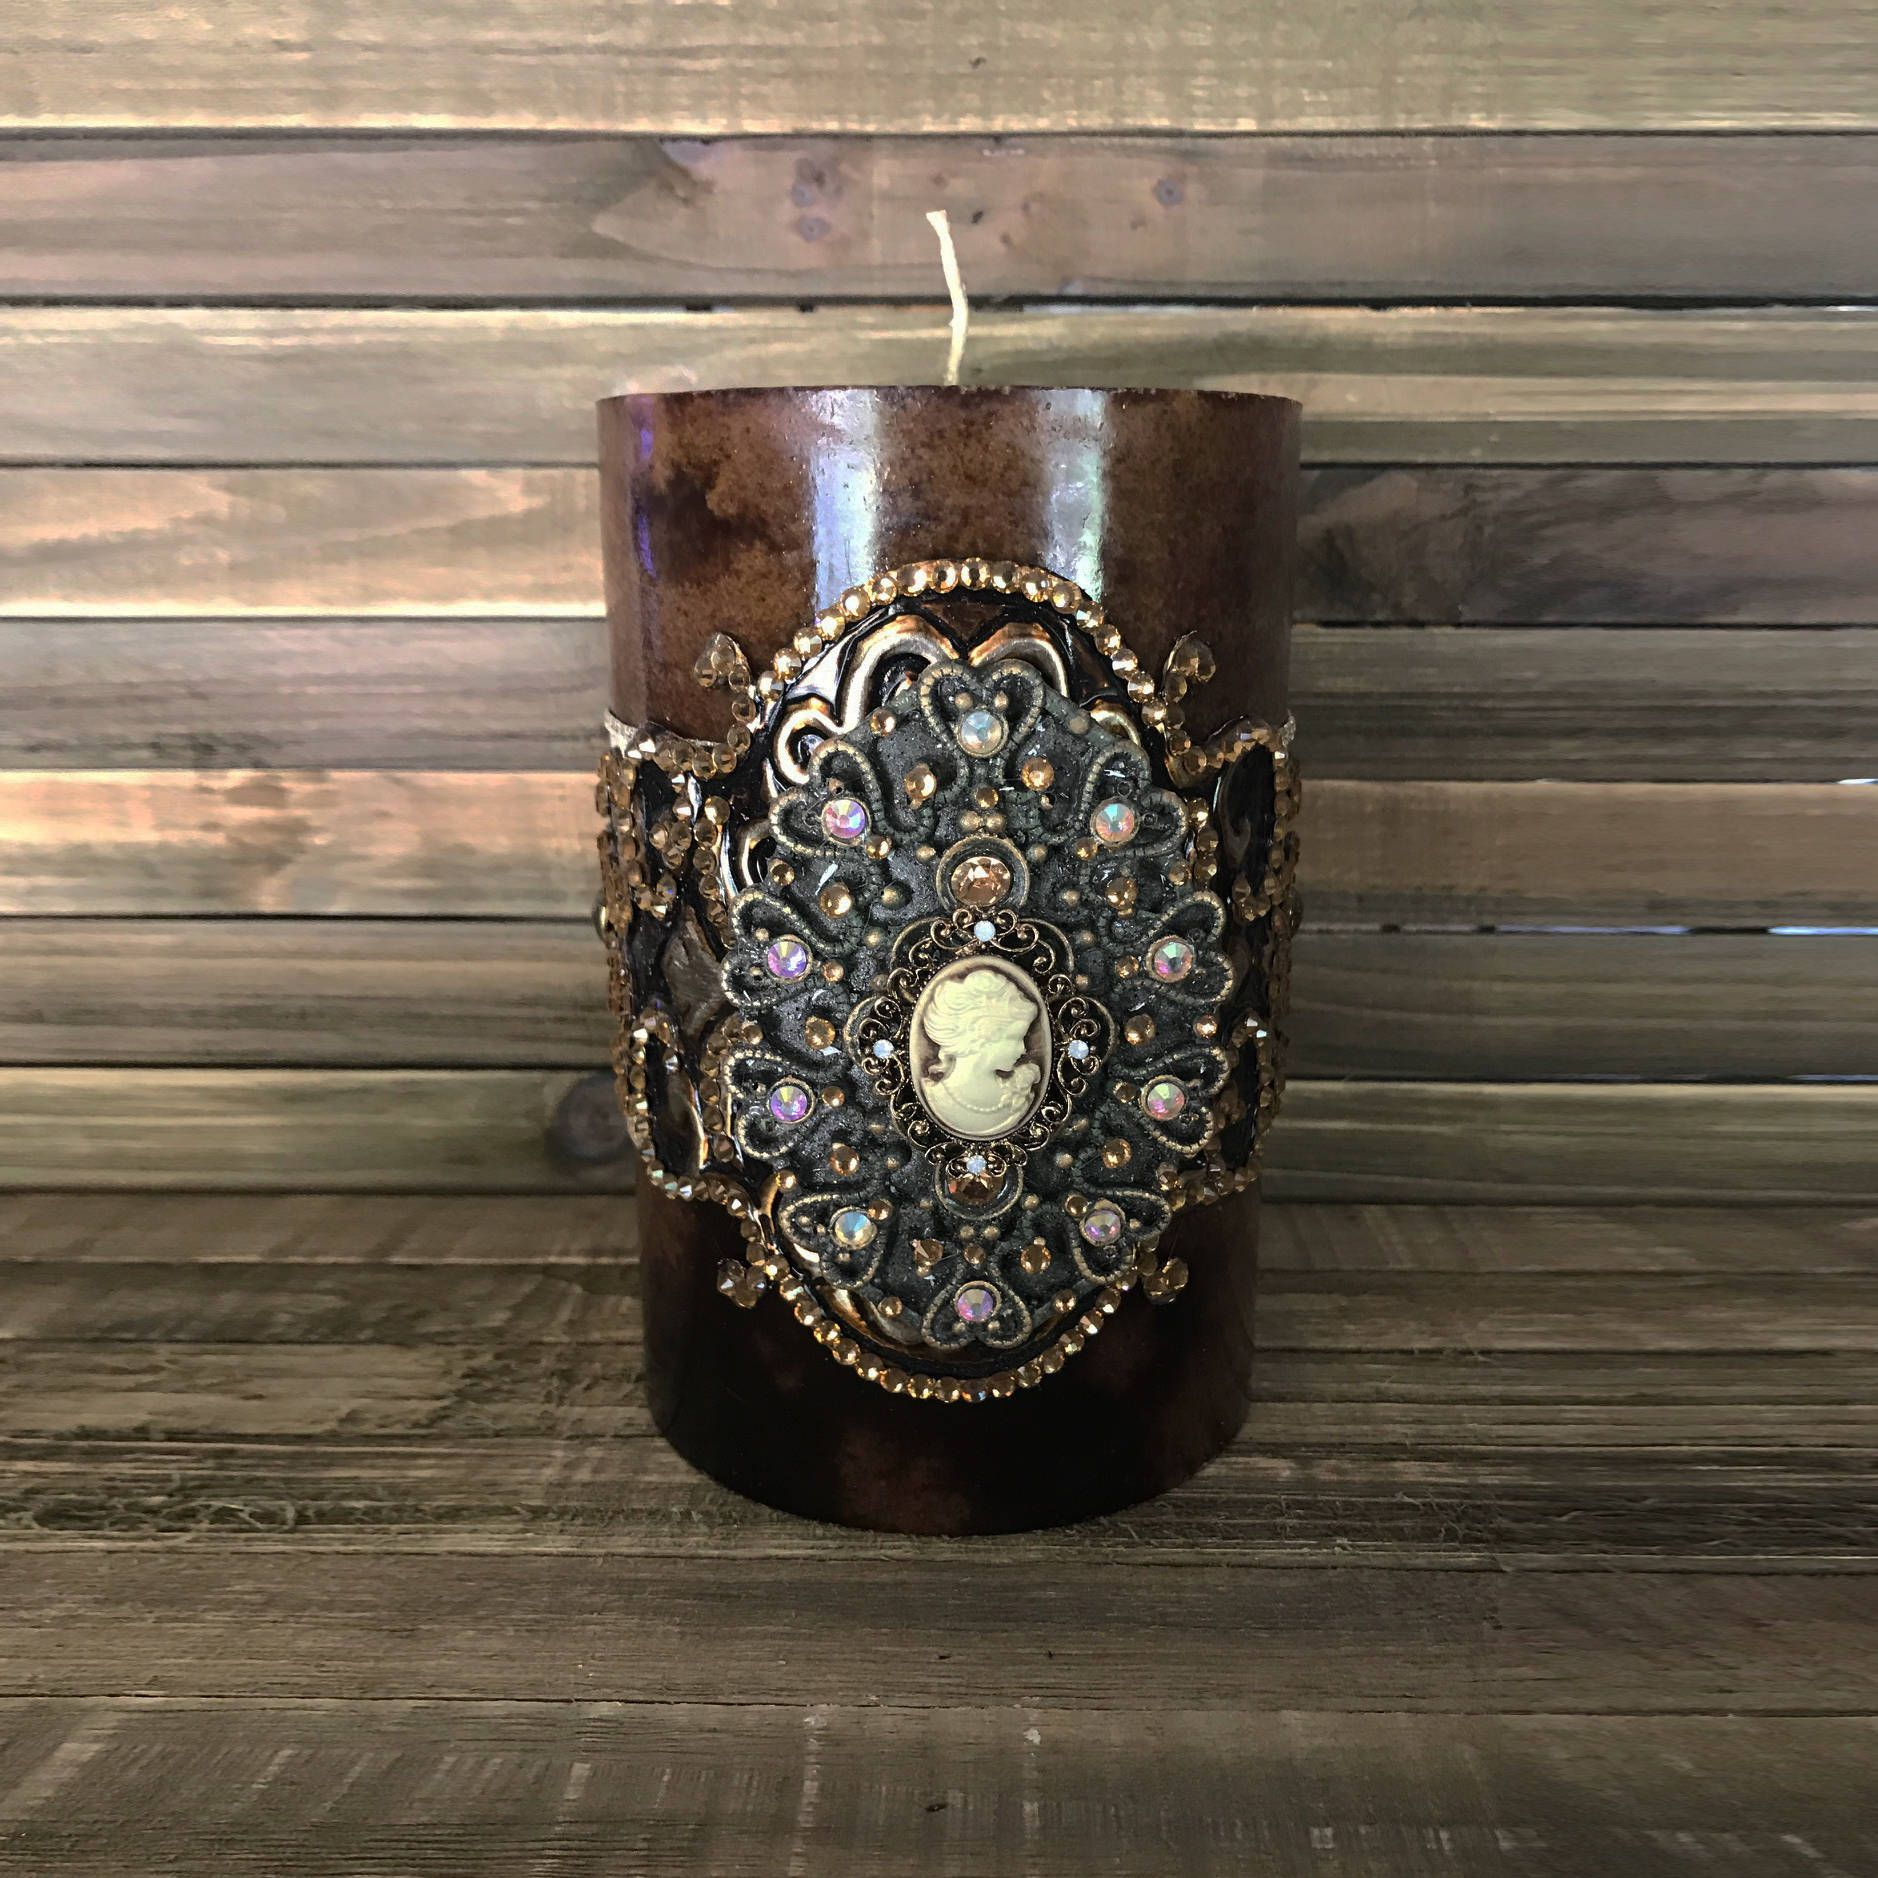 Luxury Pillar Candle Swarovski Crystals Home Decor Brown Single Wick Design Candles Rhinestoned 4x6 By Stylishvintagedesign On